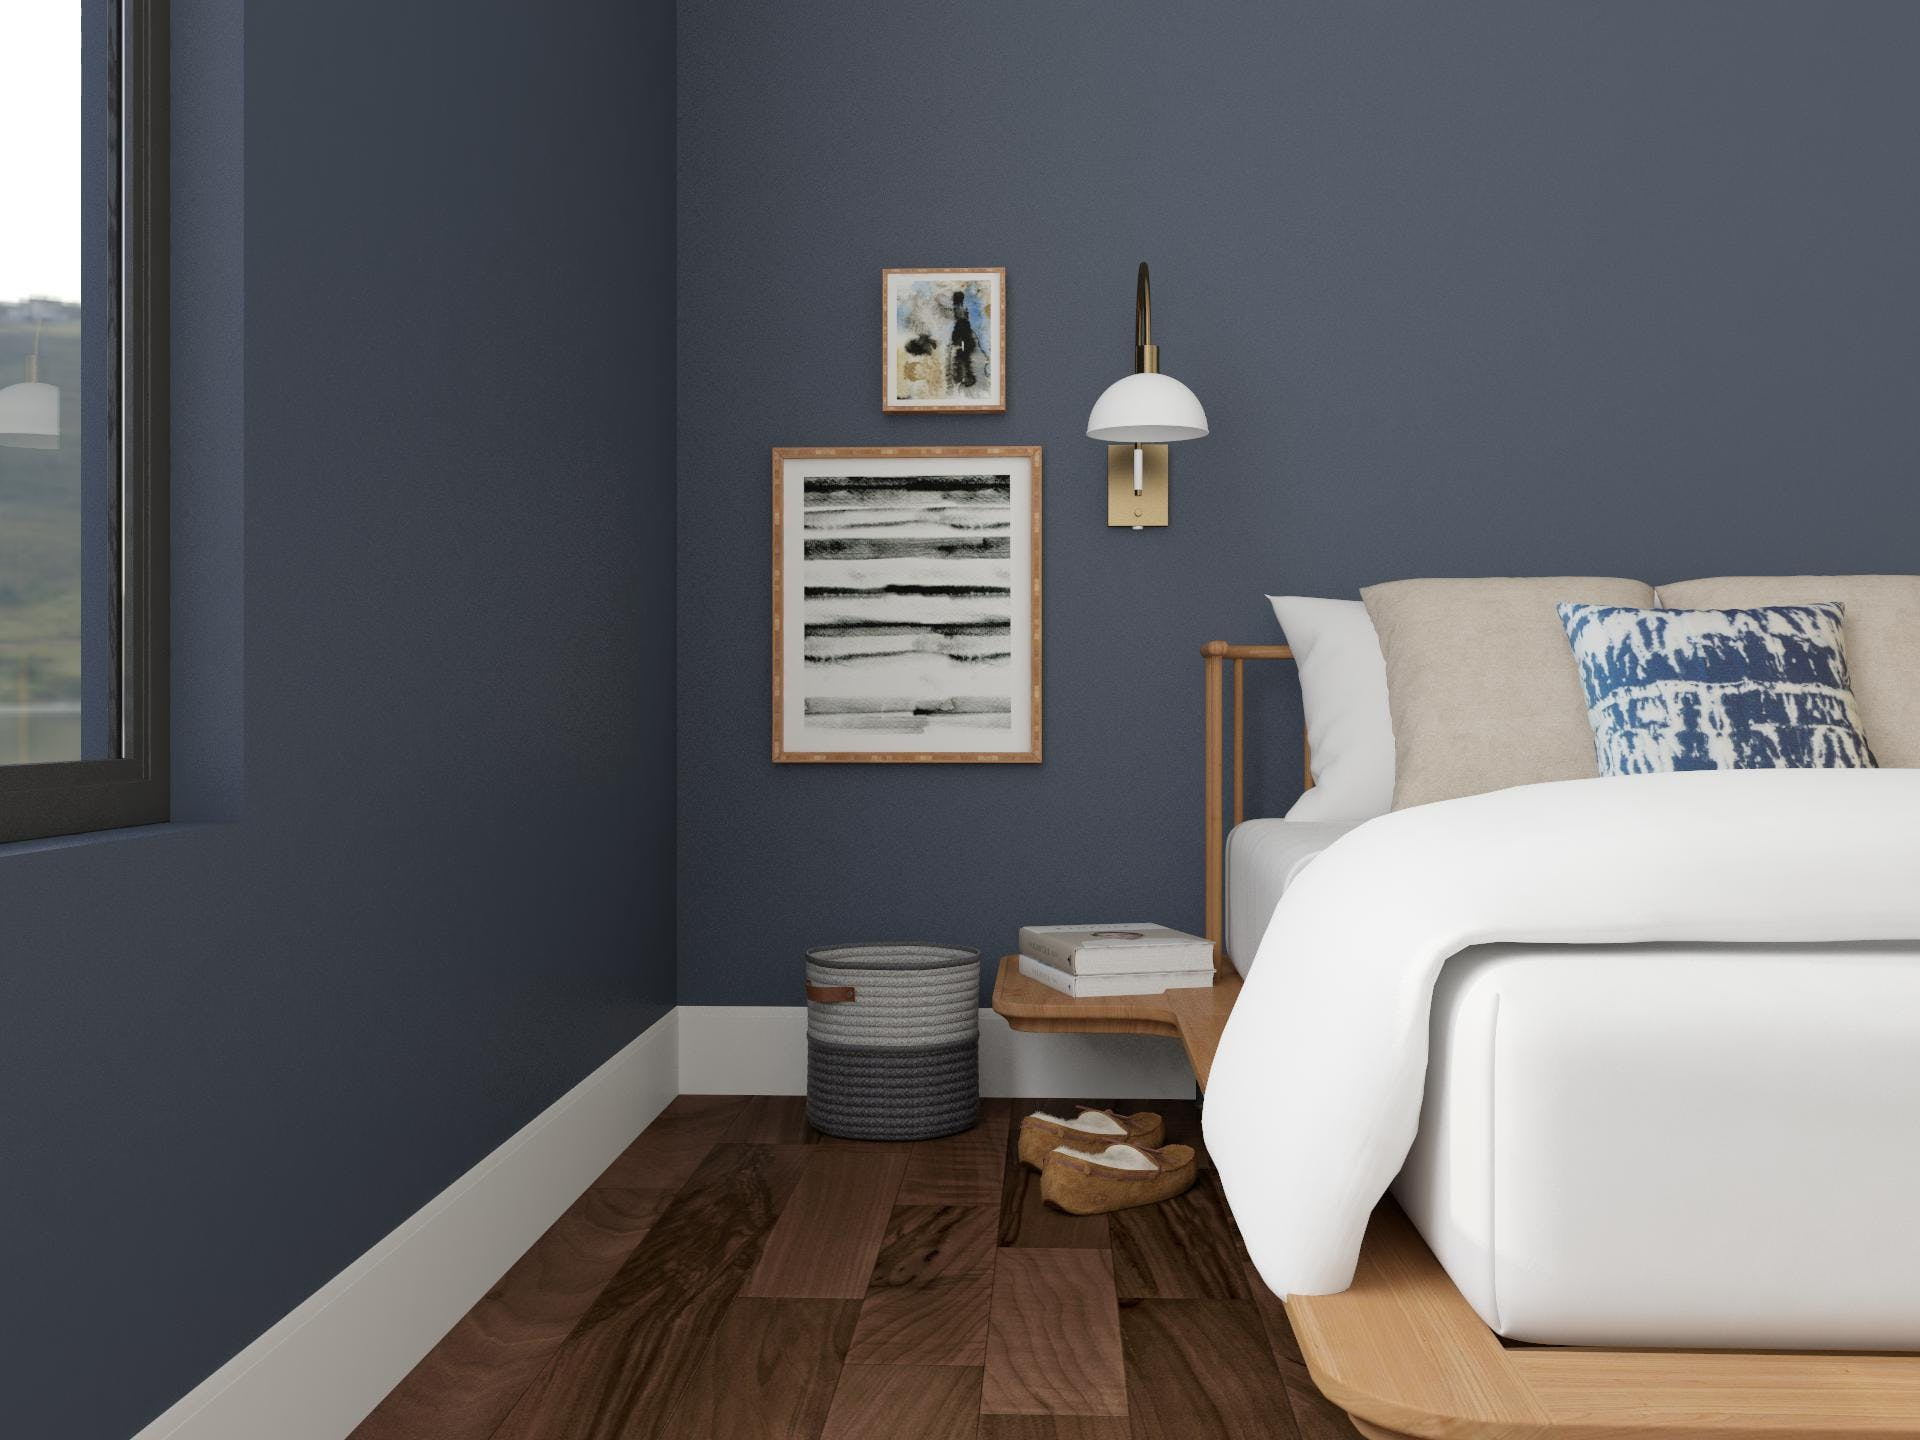 Mid-Century-Modern Bedroom in Blue with Warm Wood